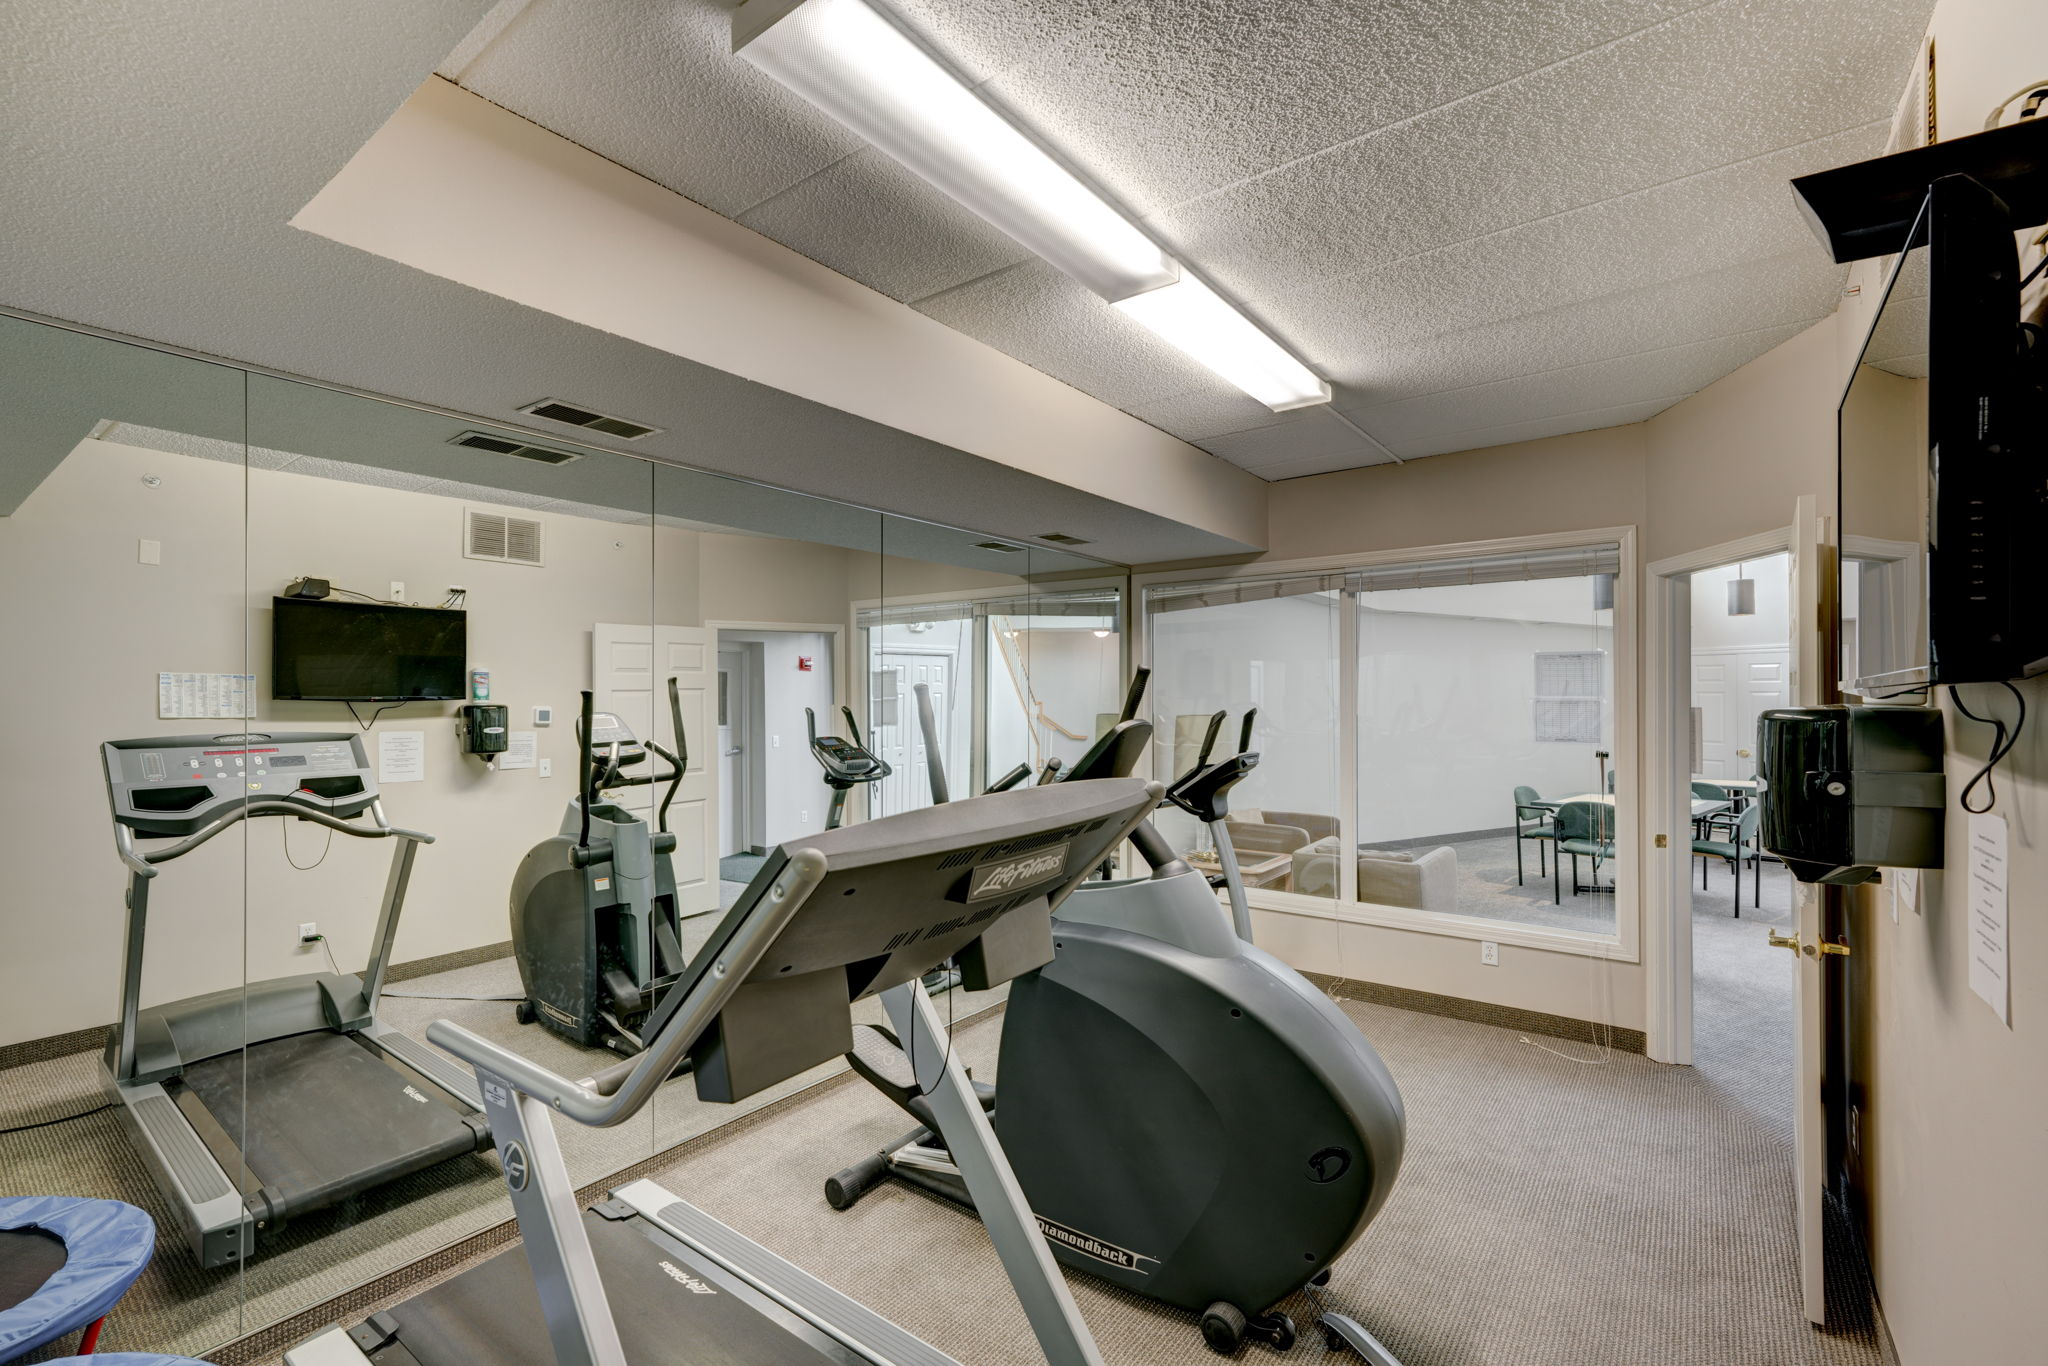 Building - Exercise Room